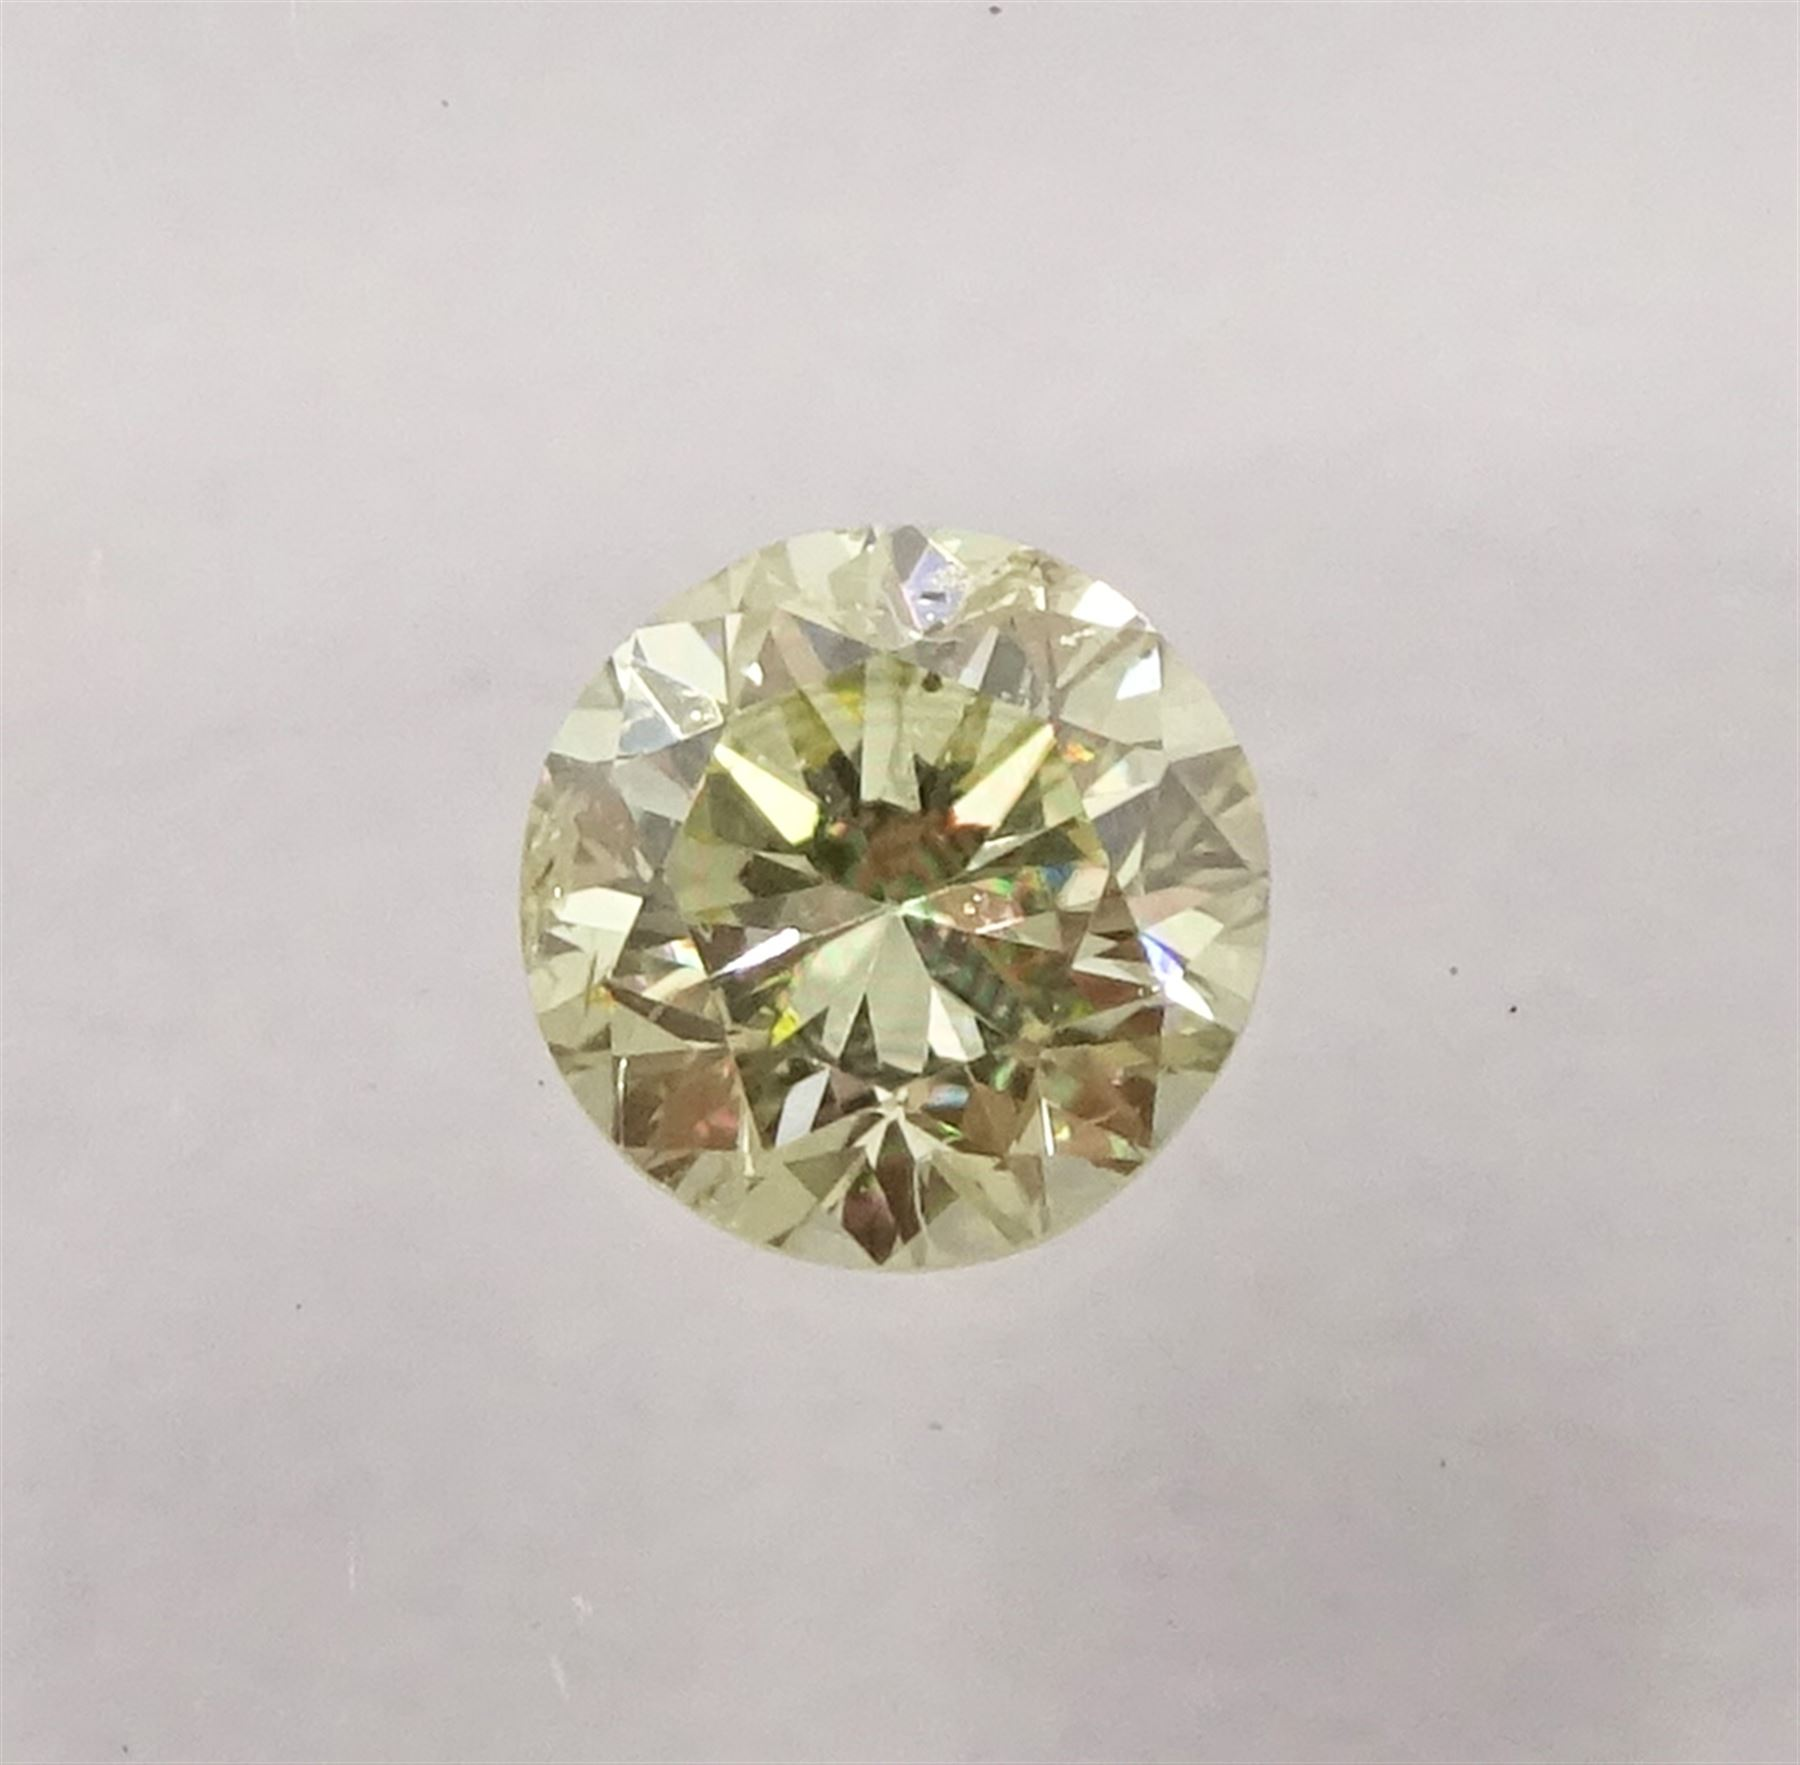 Two certified loose fancy coloured diamonds one round brilliant cut 'fancy light yellow' of 0.13 car - Image 4 of 6